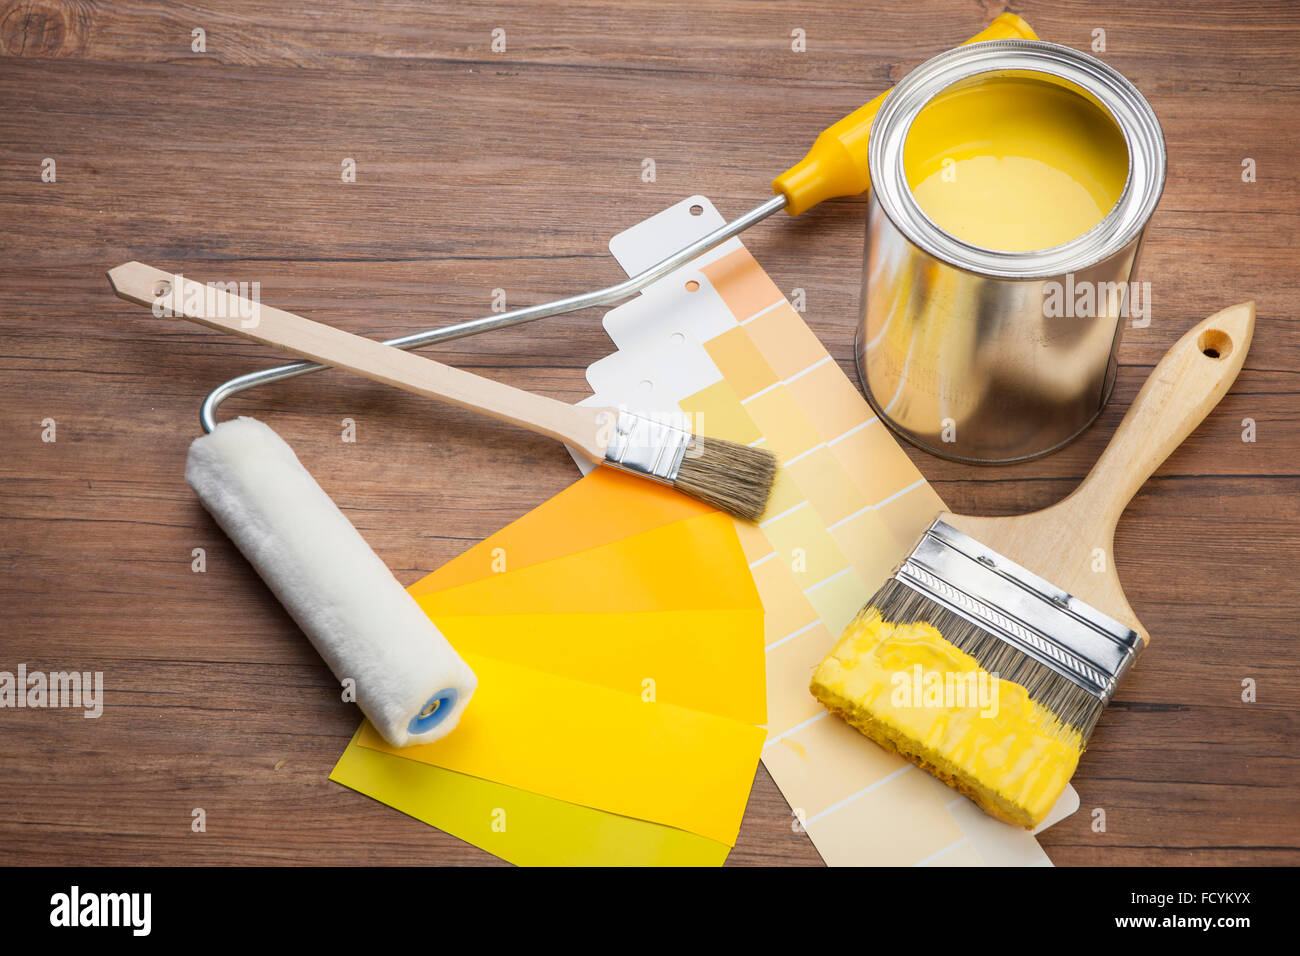 high angle of yellow paint and paint brush dipped in yellow paint